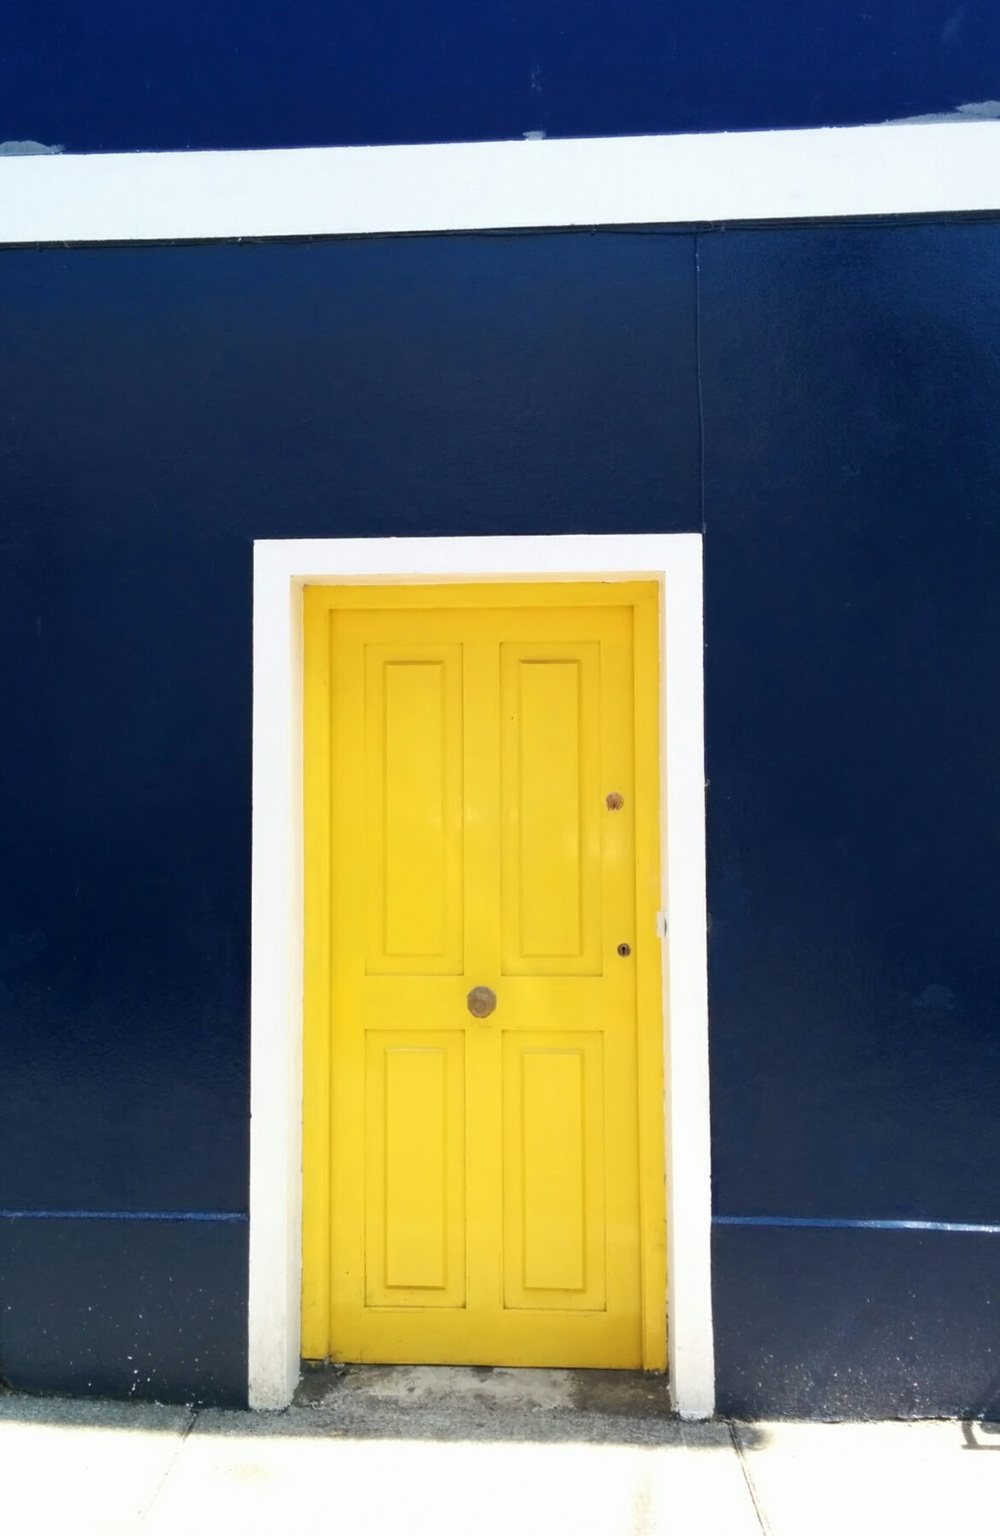 Blue house with yellow door, Dingle, Co. Kerry